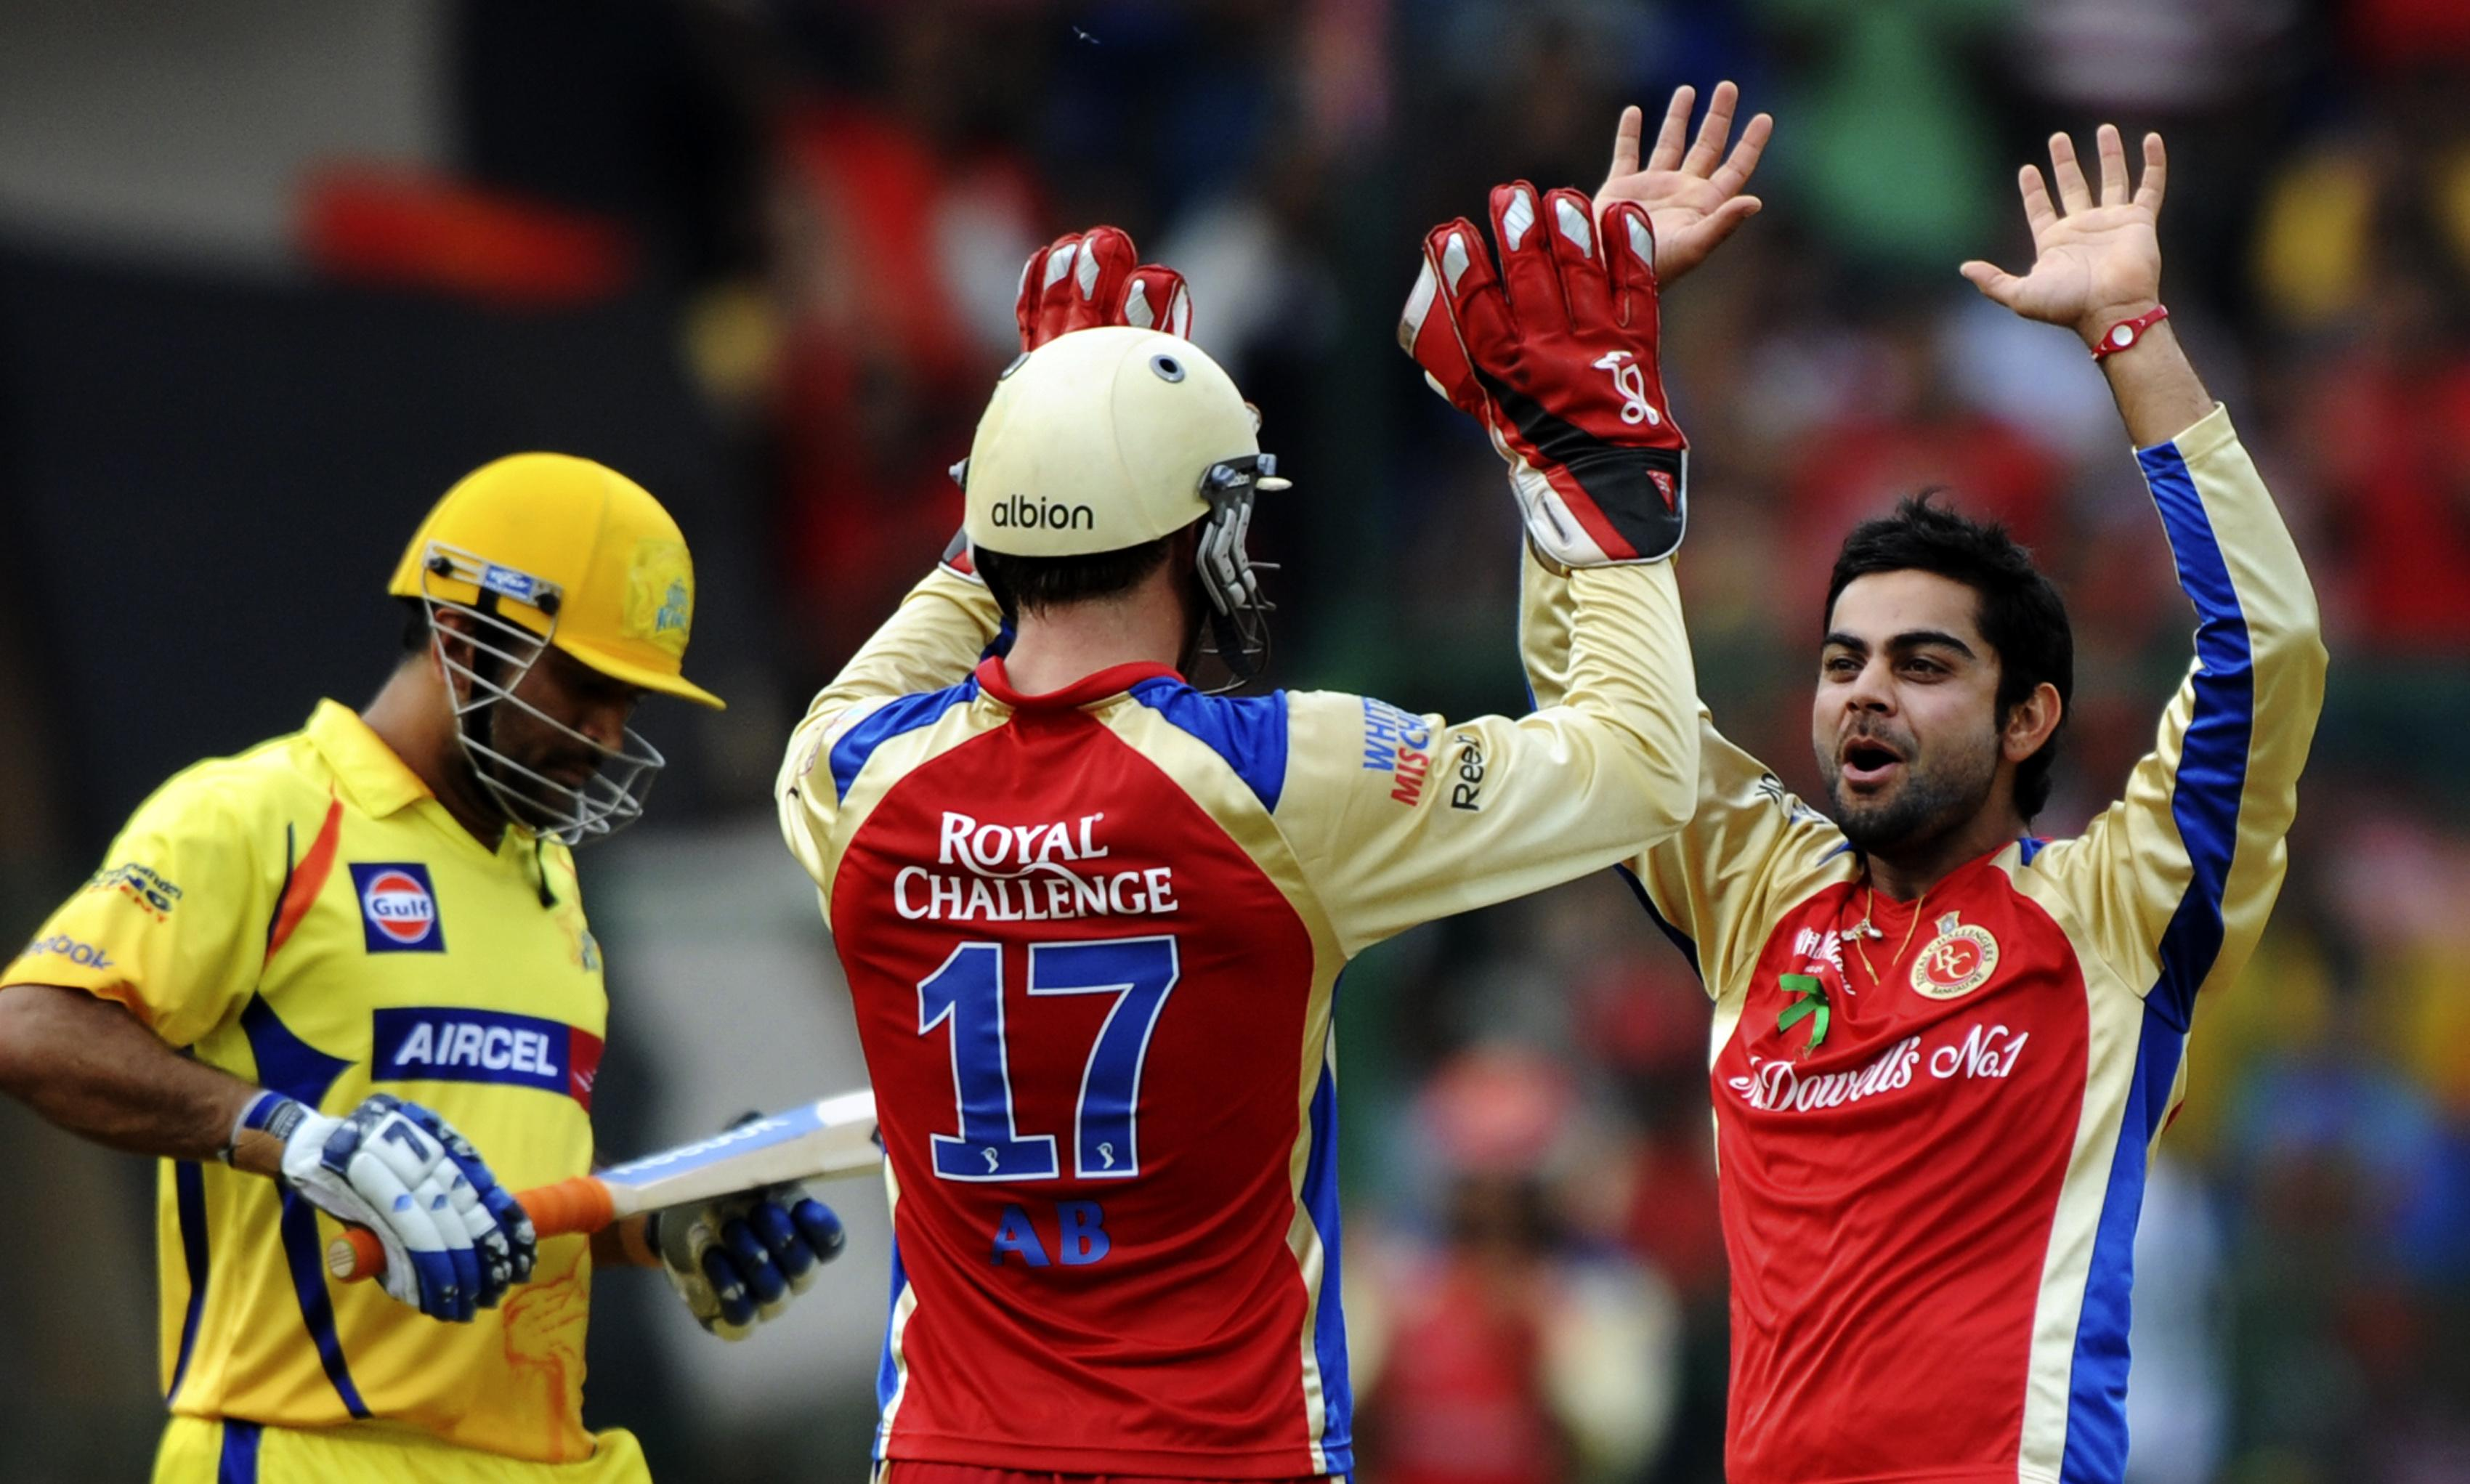 Kohli and de Kock give RCB a quick start